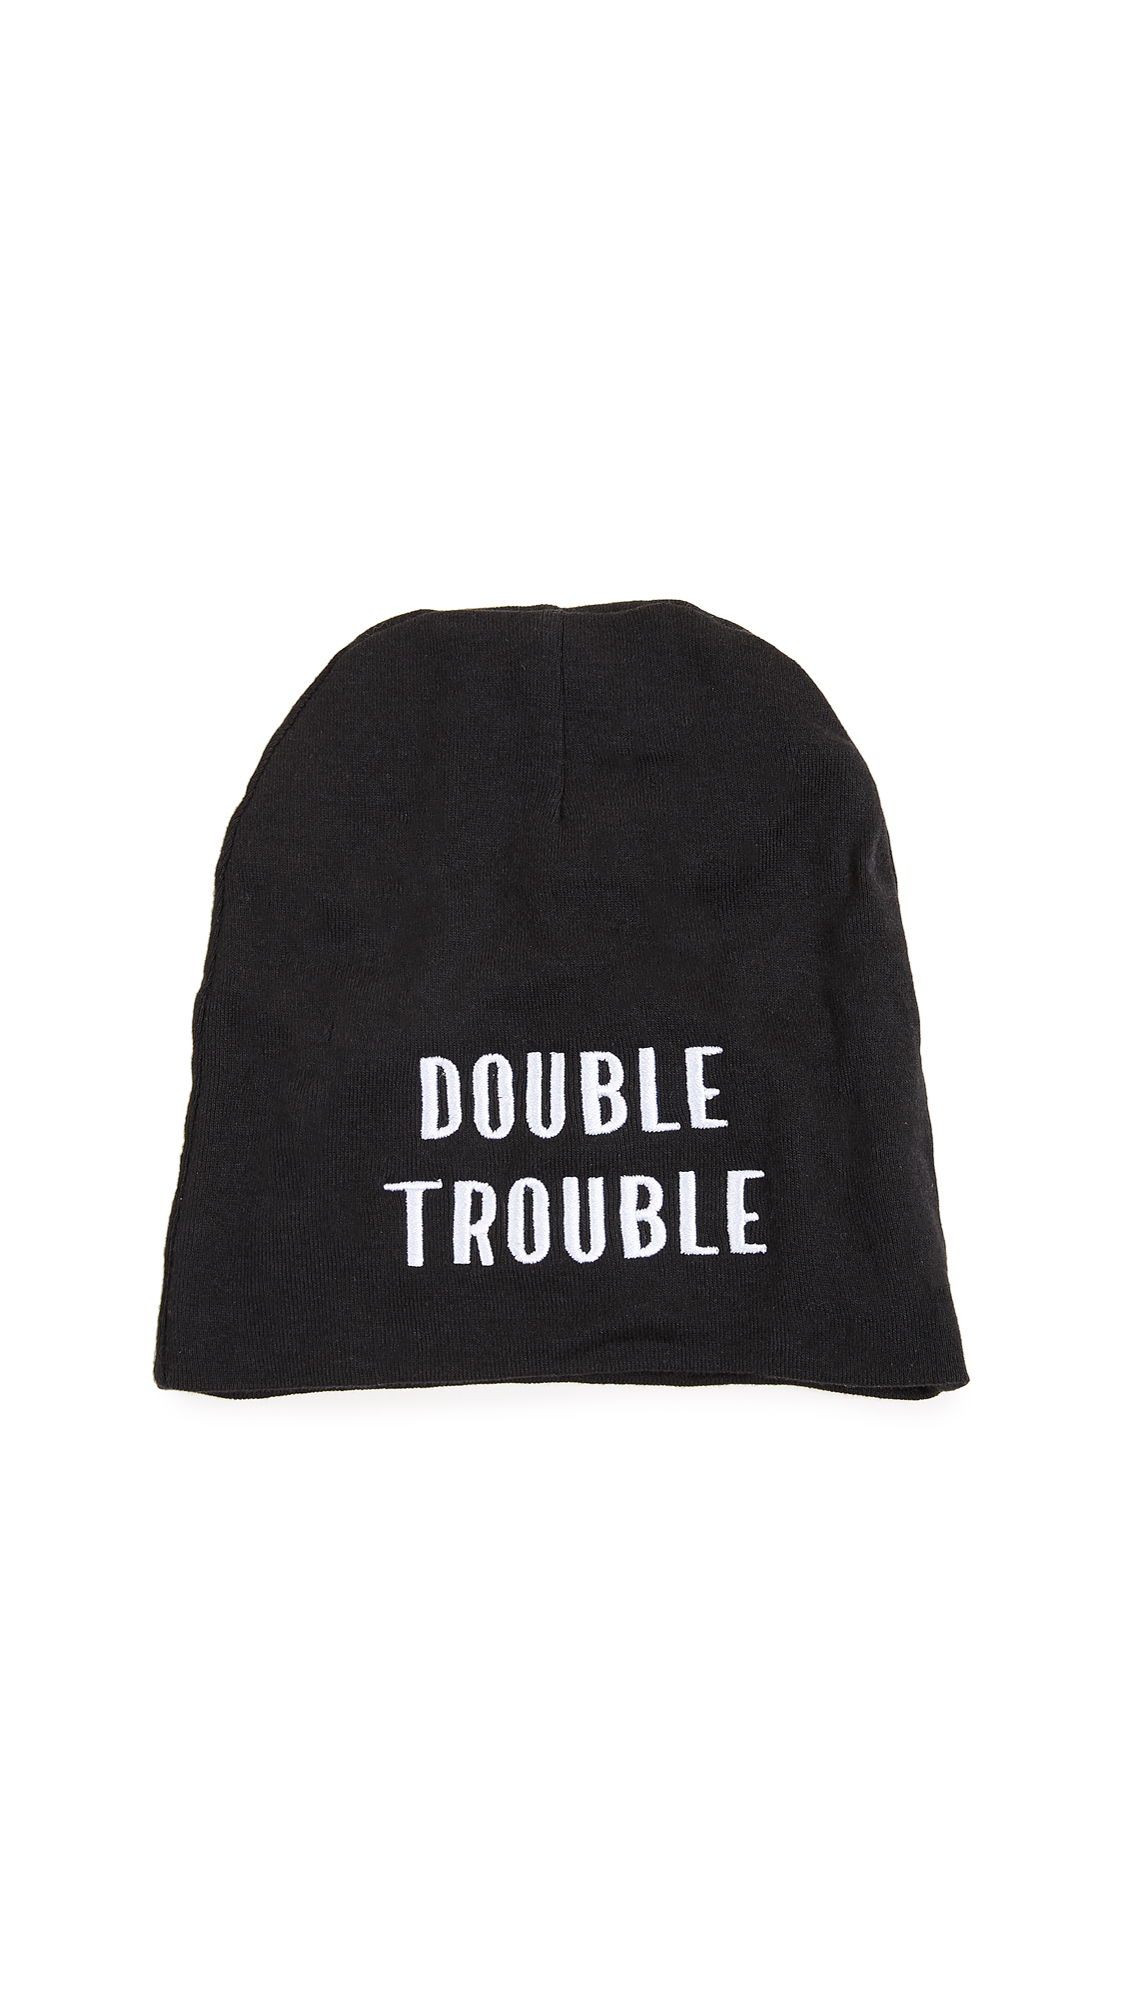 Private Party Double Trouble Baby Hat - Black